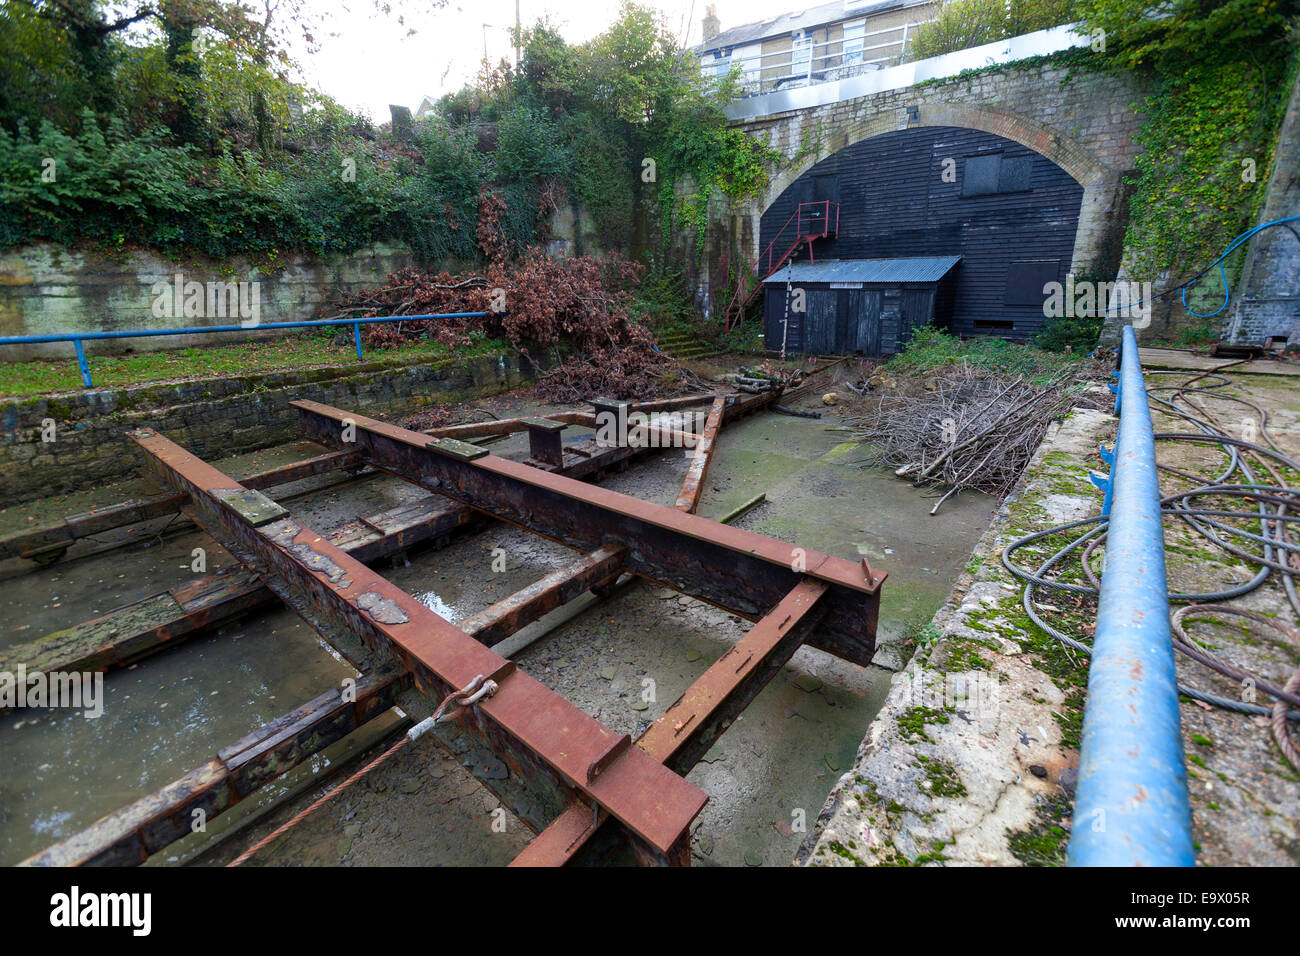 Old dry dock, Britannia Wharf, Cowes, Isle of Wight, England, UK - Stock Image